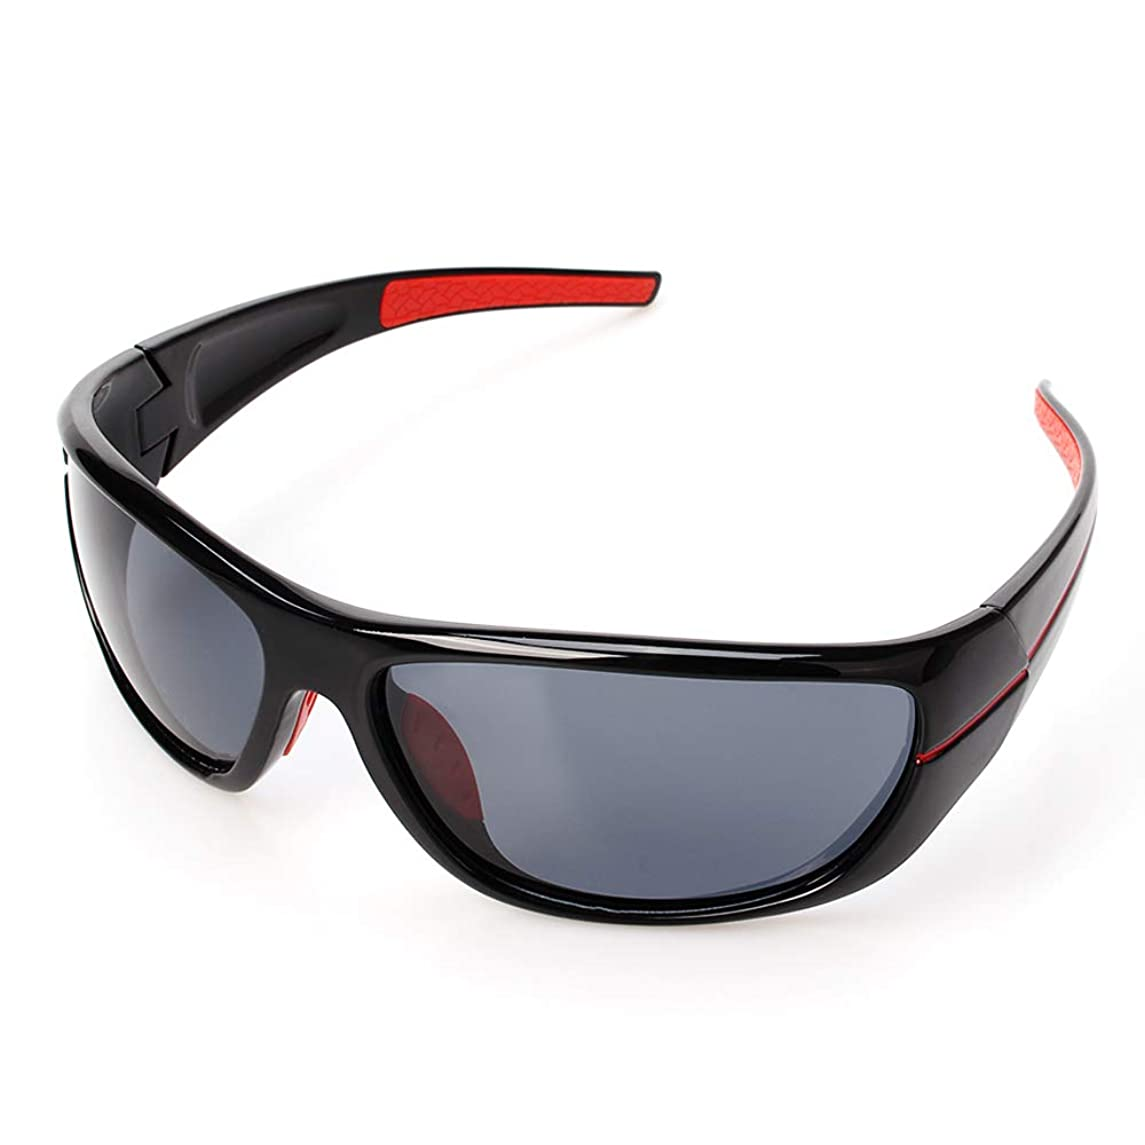 Motorcycle Sunglasses Polarized,Cycling Glass Goggles UV Protection For Bicycle Motocross Shooting Climbing Men Women